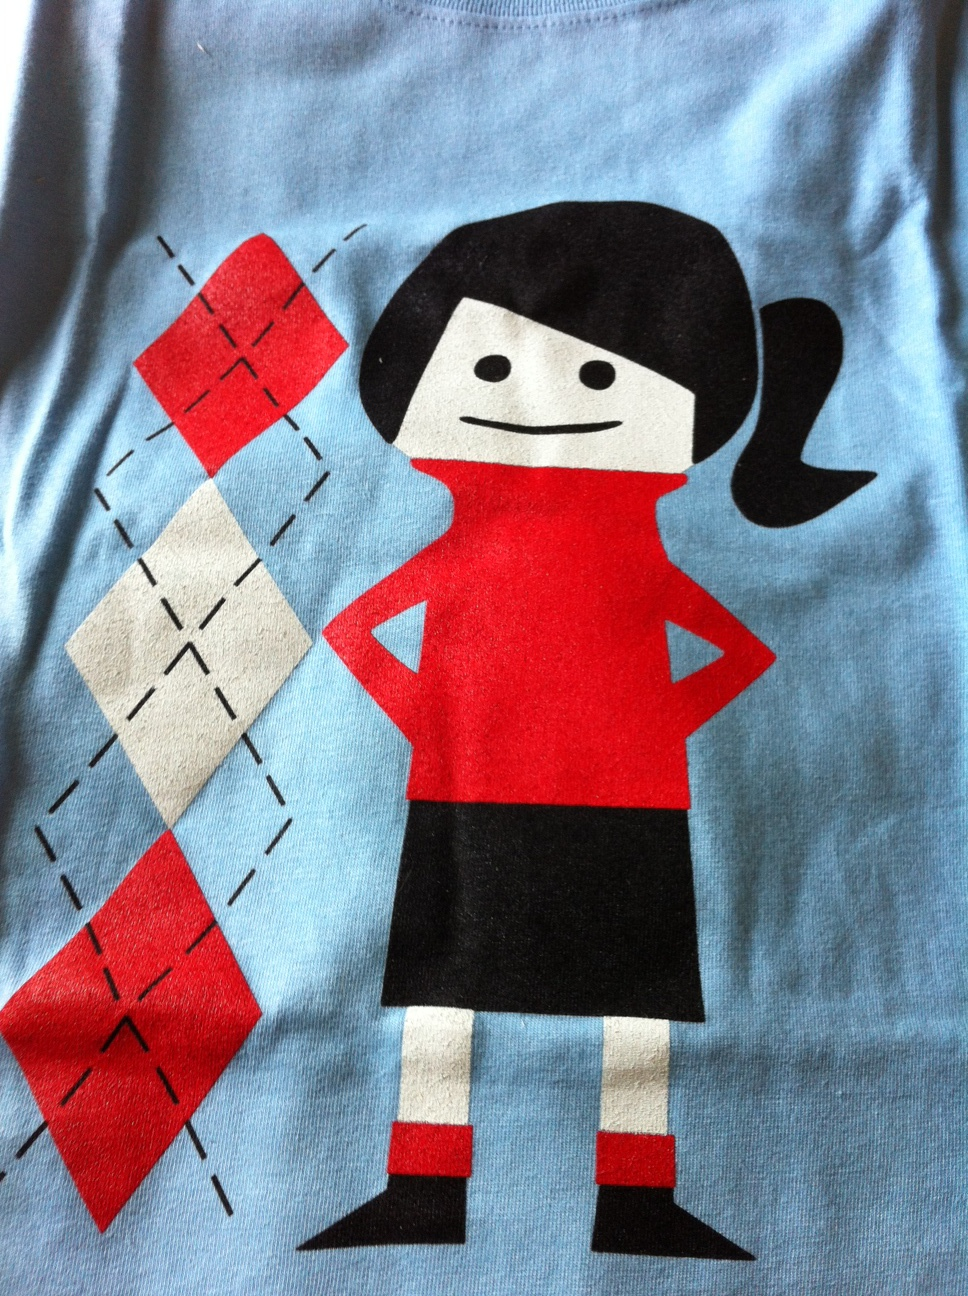 Super Cool Sixties-style Illustrations on Tees